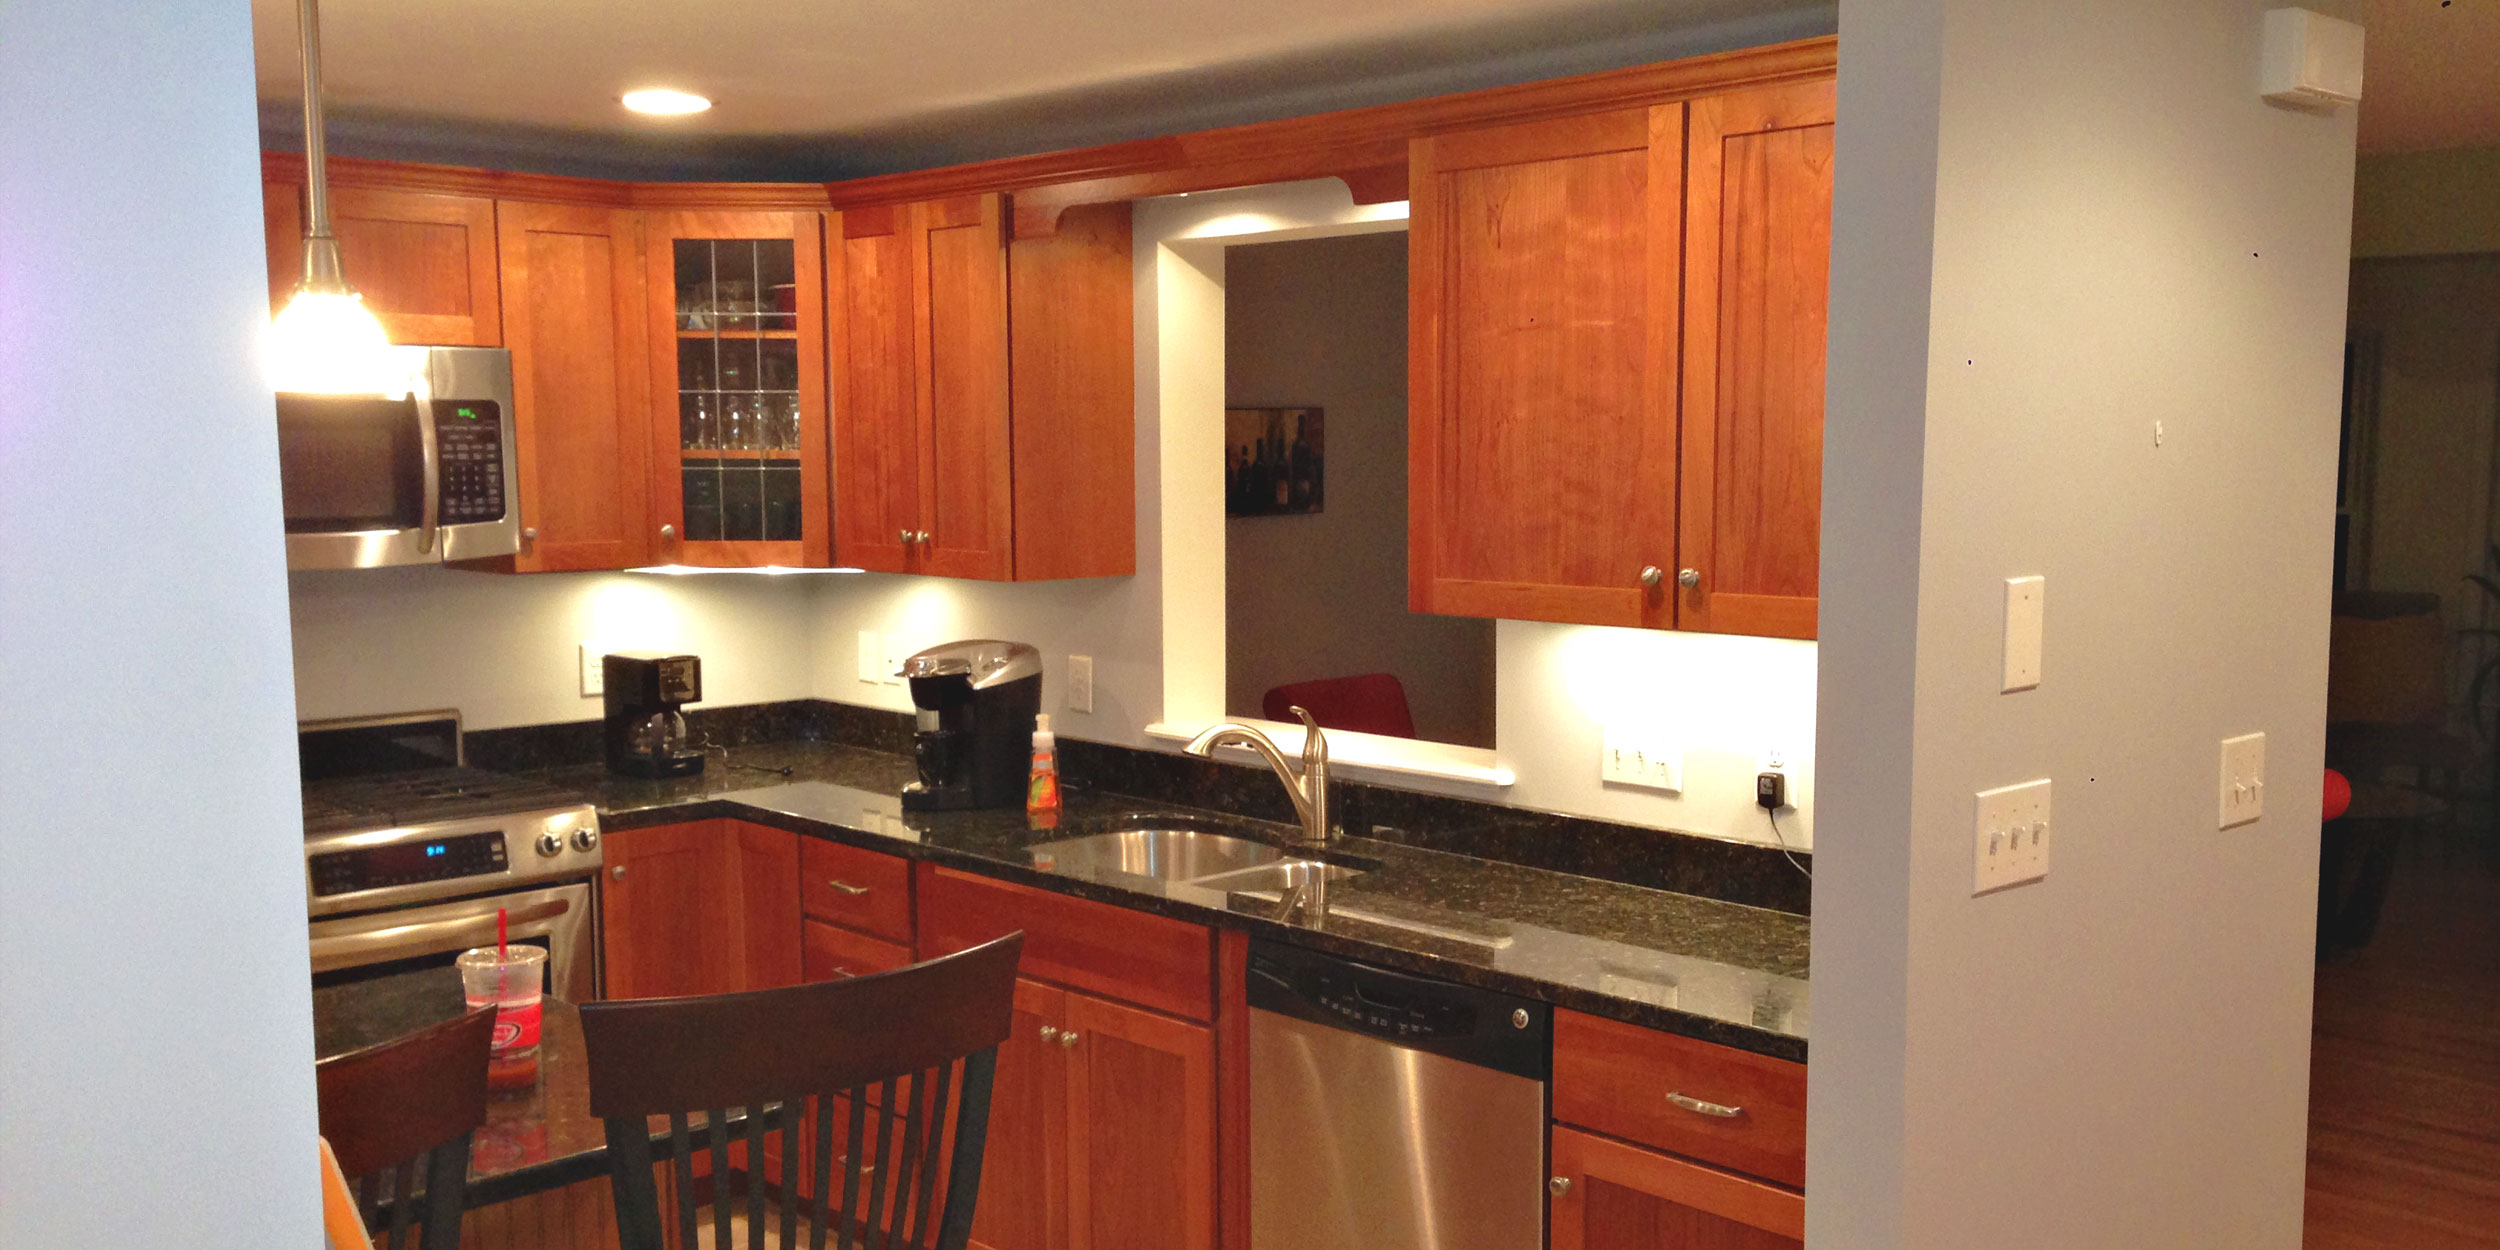 Interior walls of kitchen painted by Mystic Painting Co. in Wakefield, MA